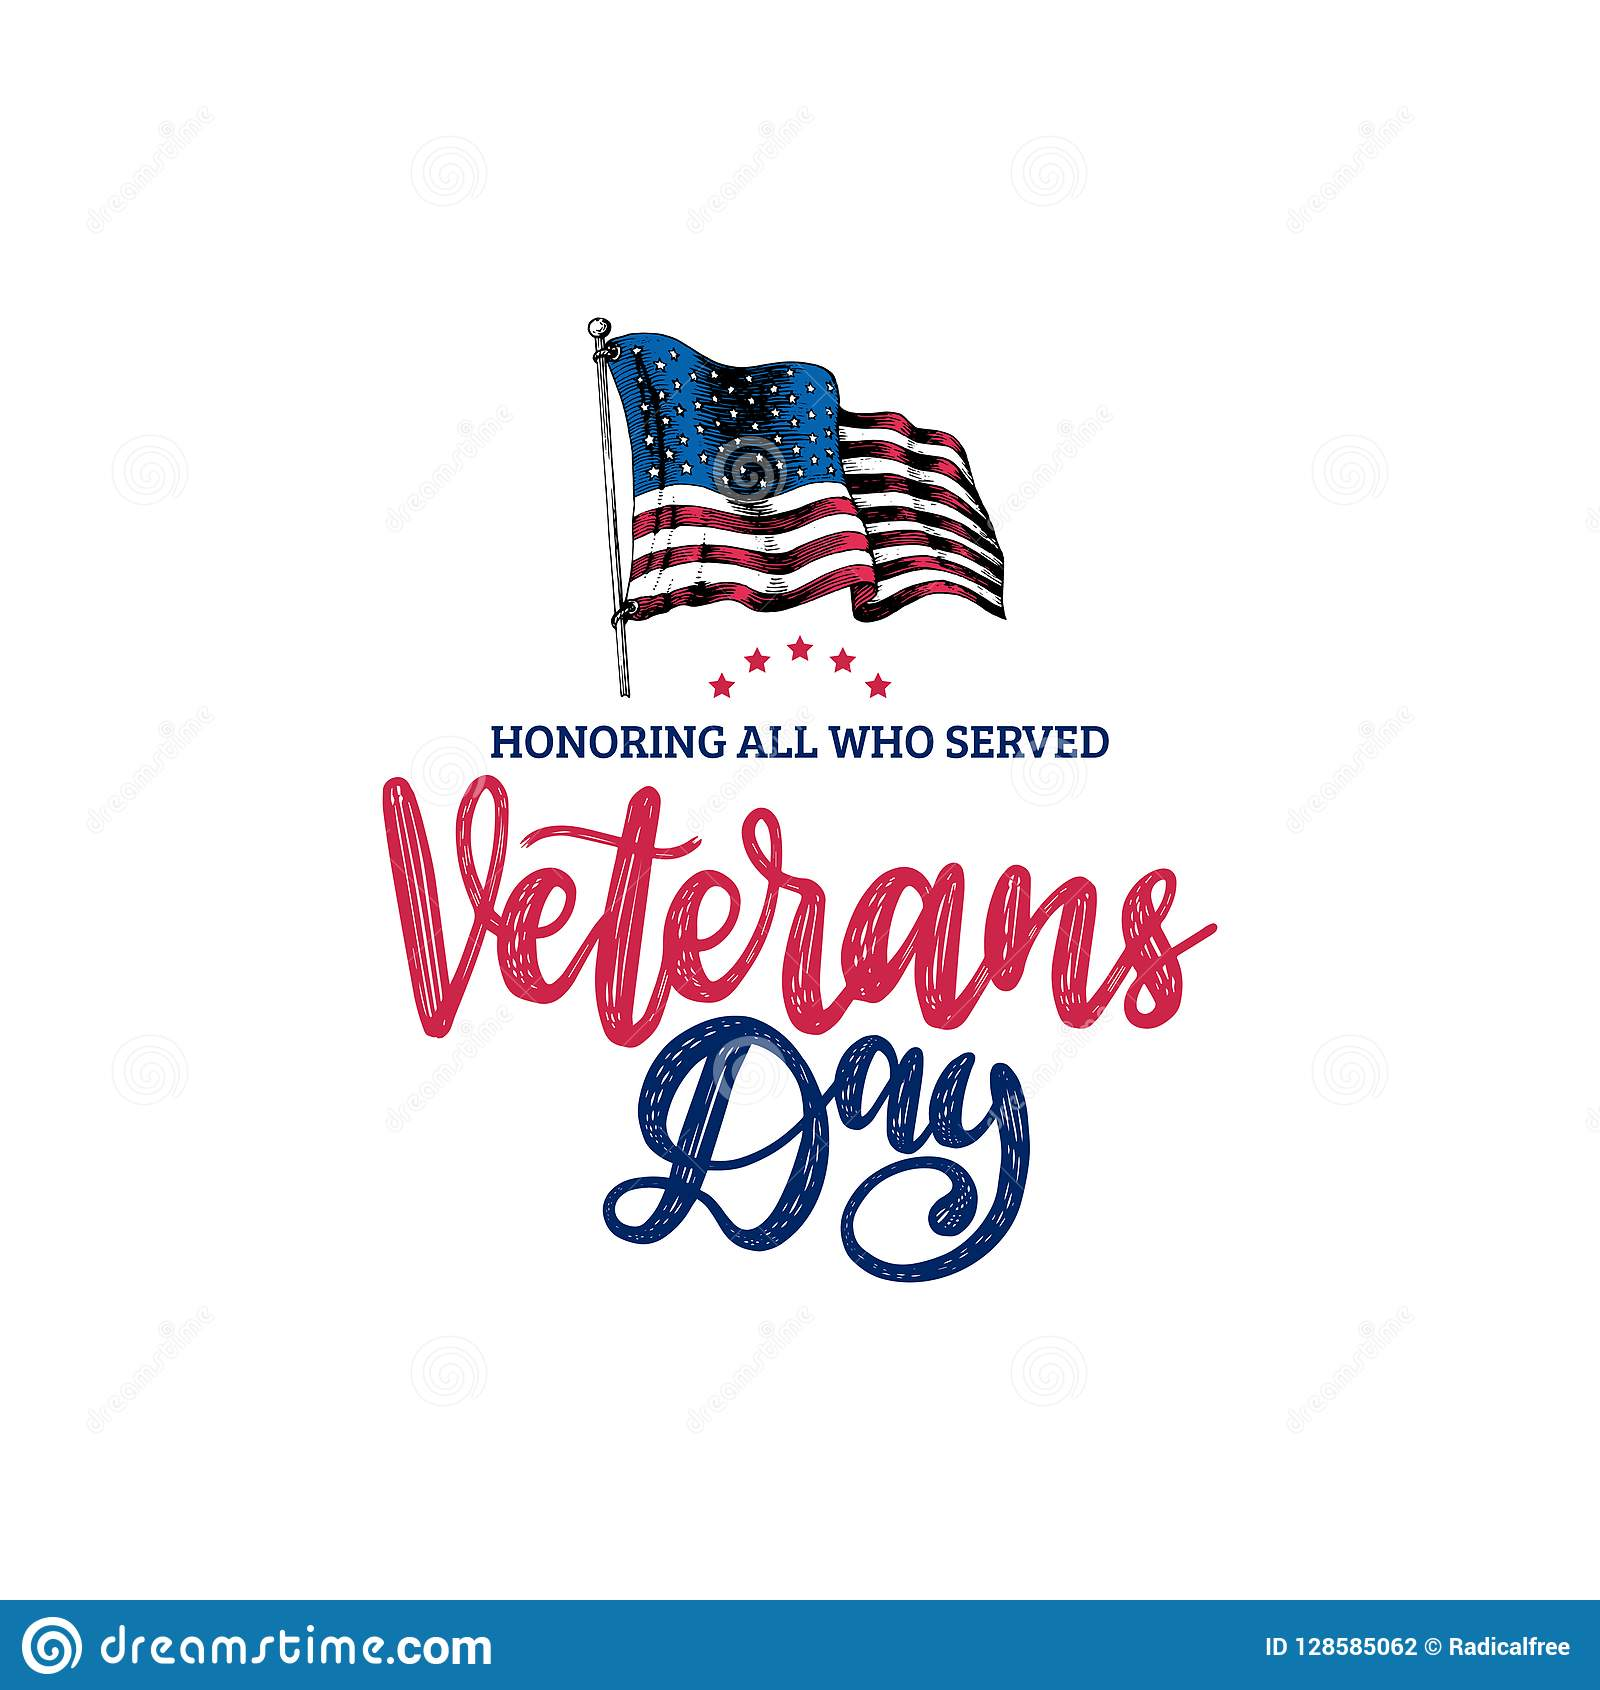 Veterans Day, hand lettering with USA flag illustration in engraving style. Phrase Honoring All Who Served in vector.